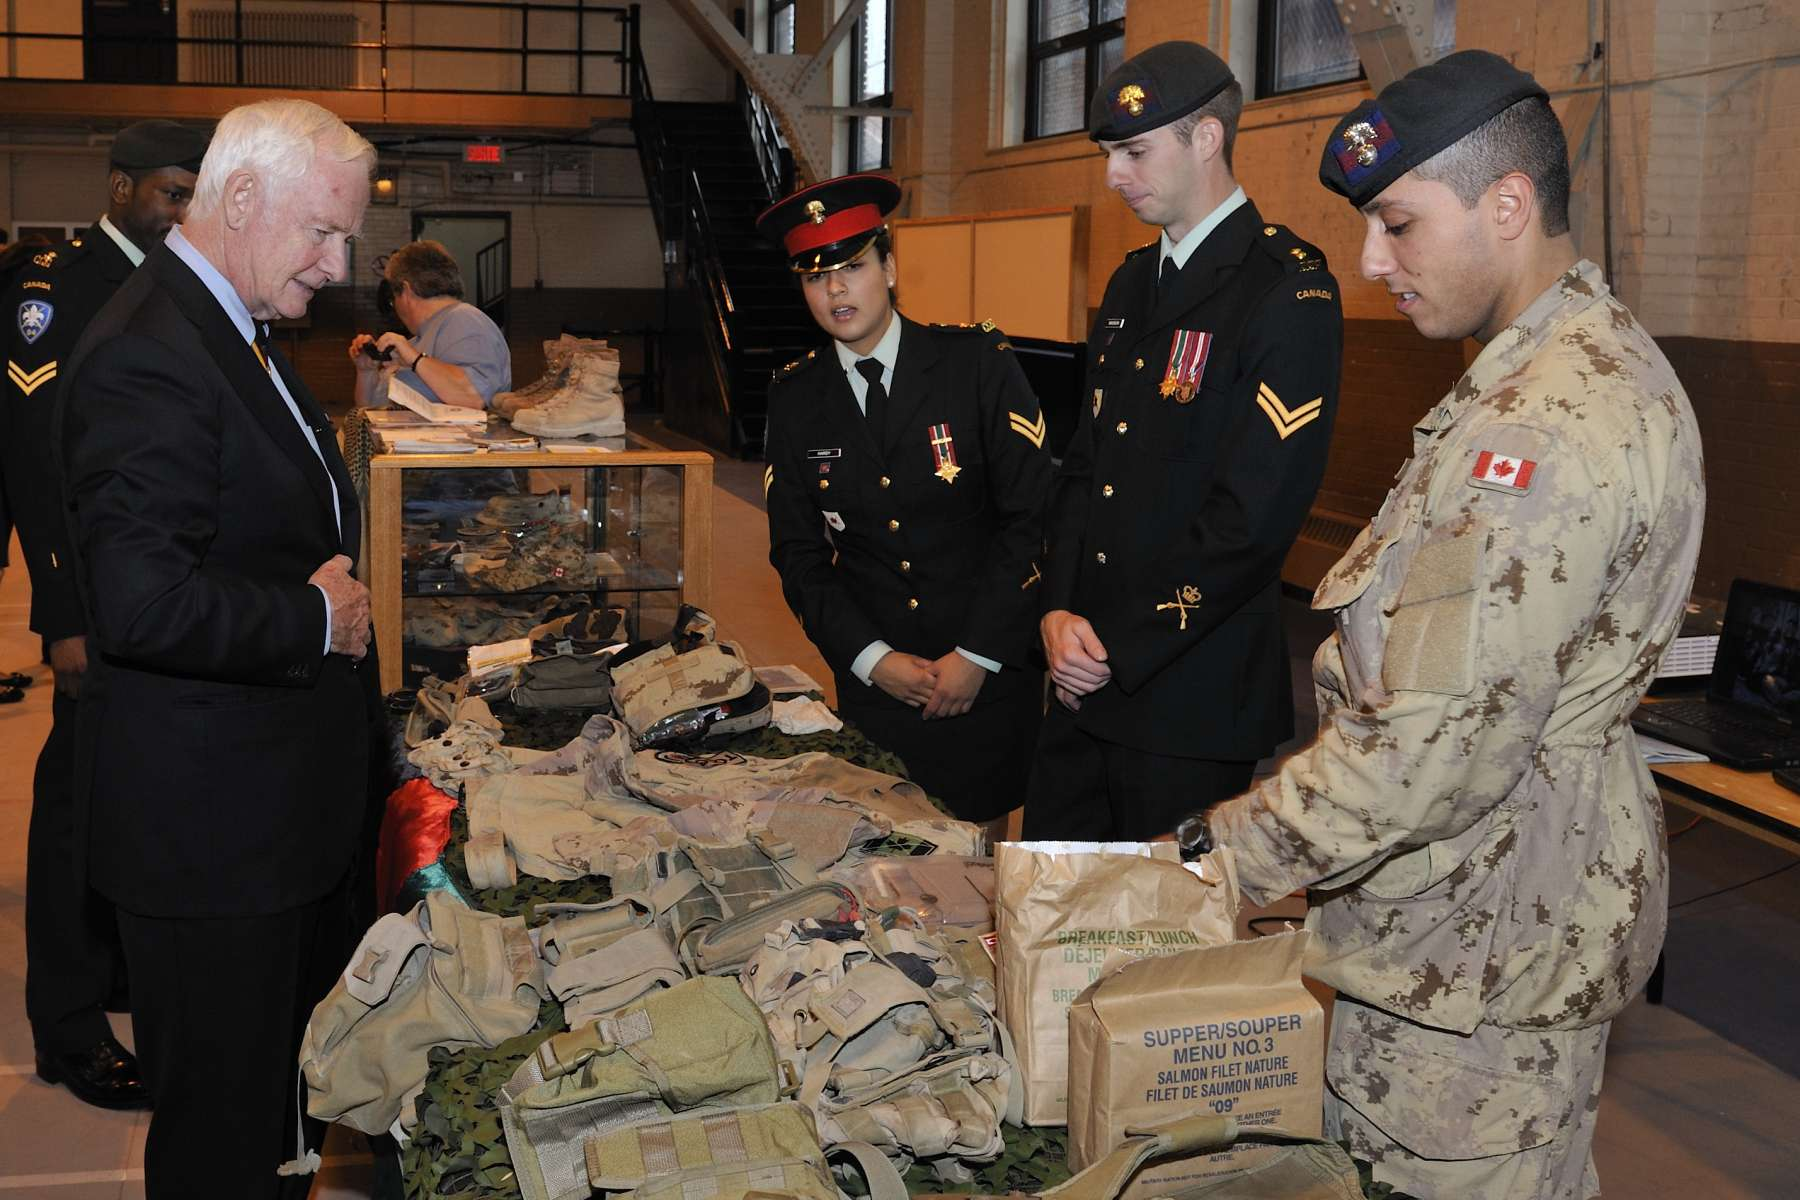 During his visit to the Canadian Grenadier Guards Armoury, His Excellency met with some of it members who were deployed overseas.